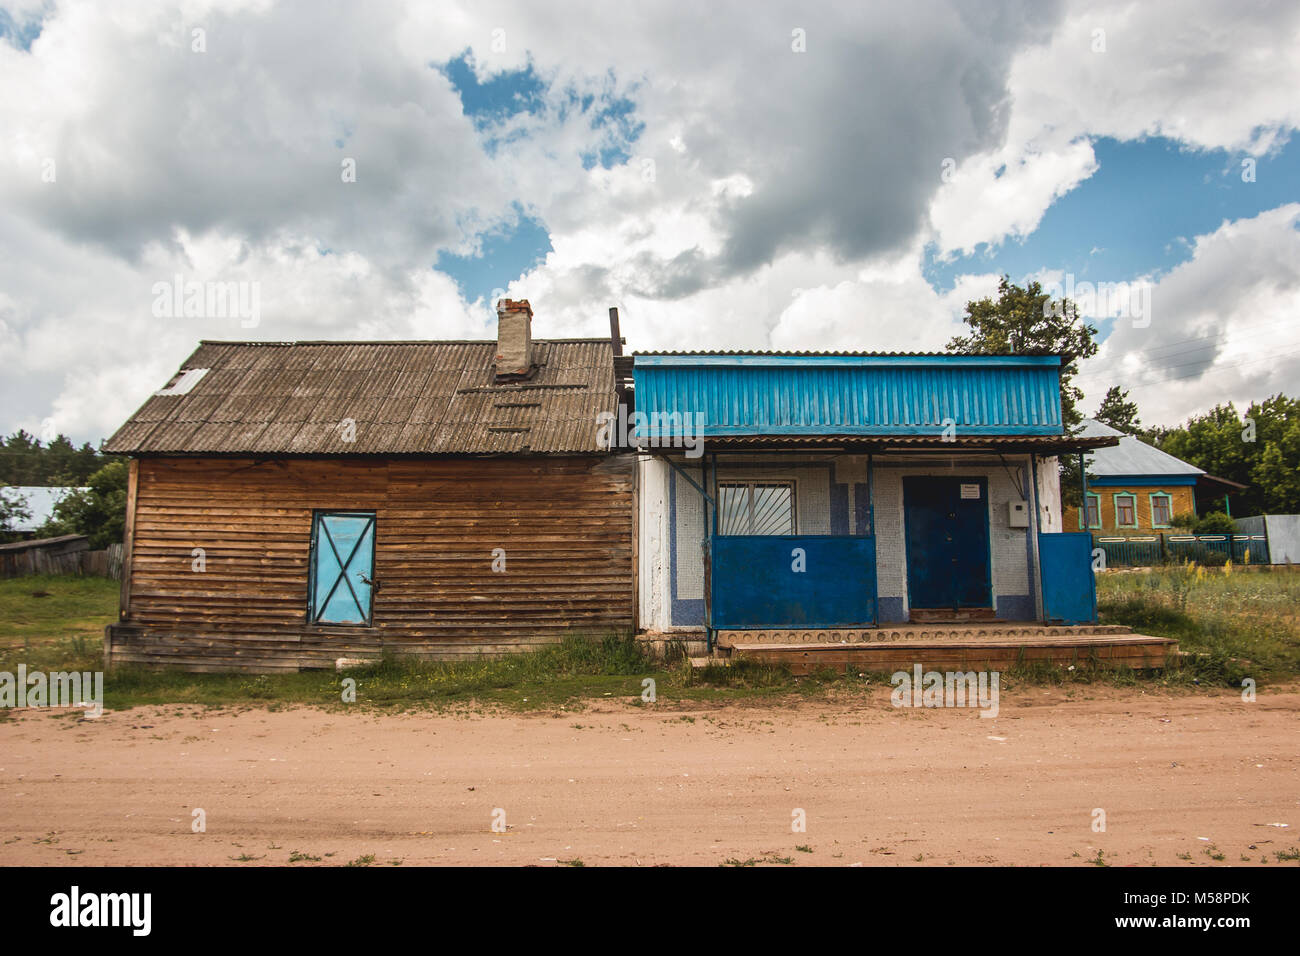 Village shop in typical Russian countryside at summer - Stock Image